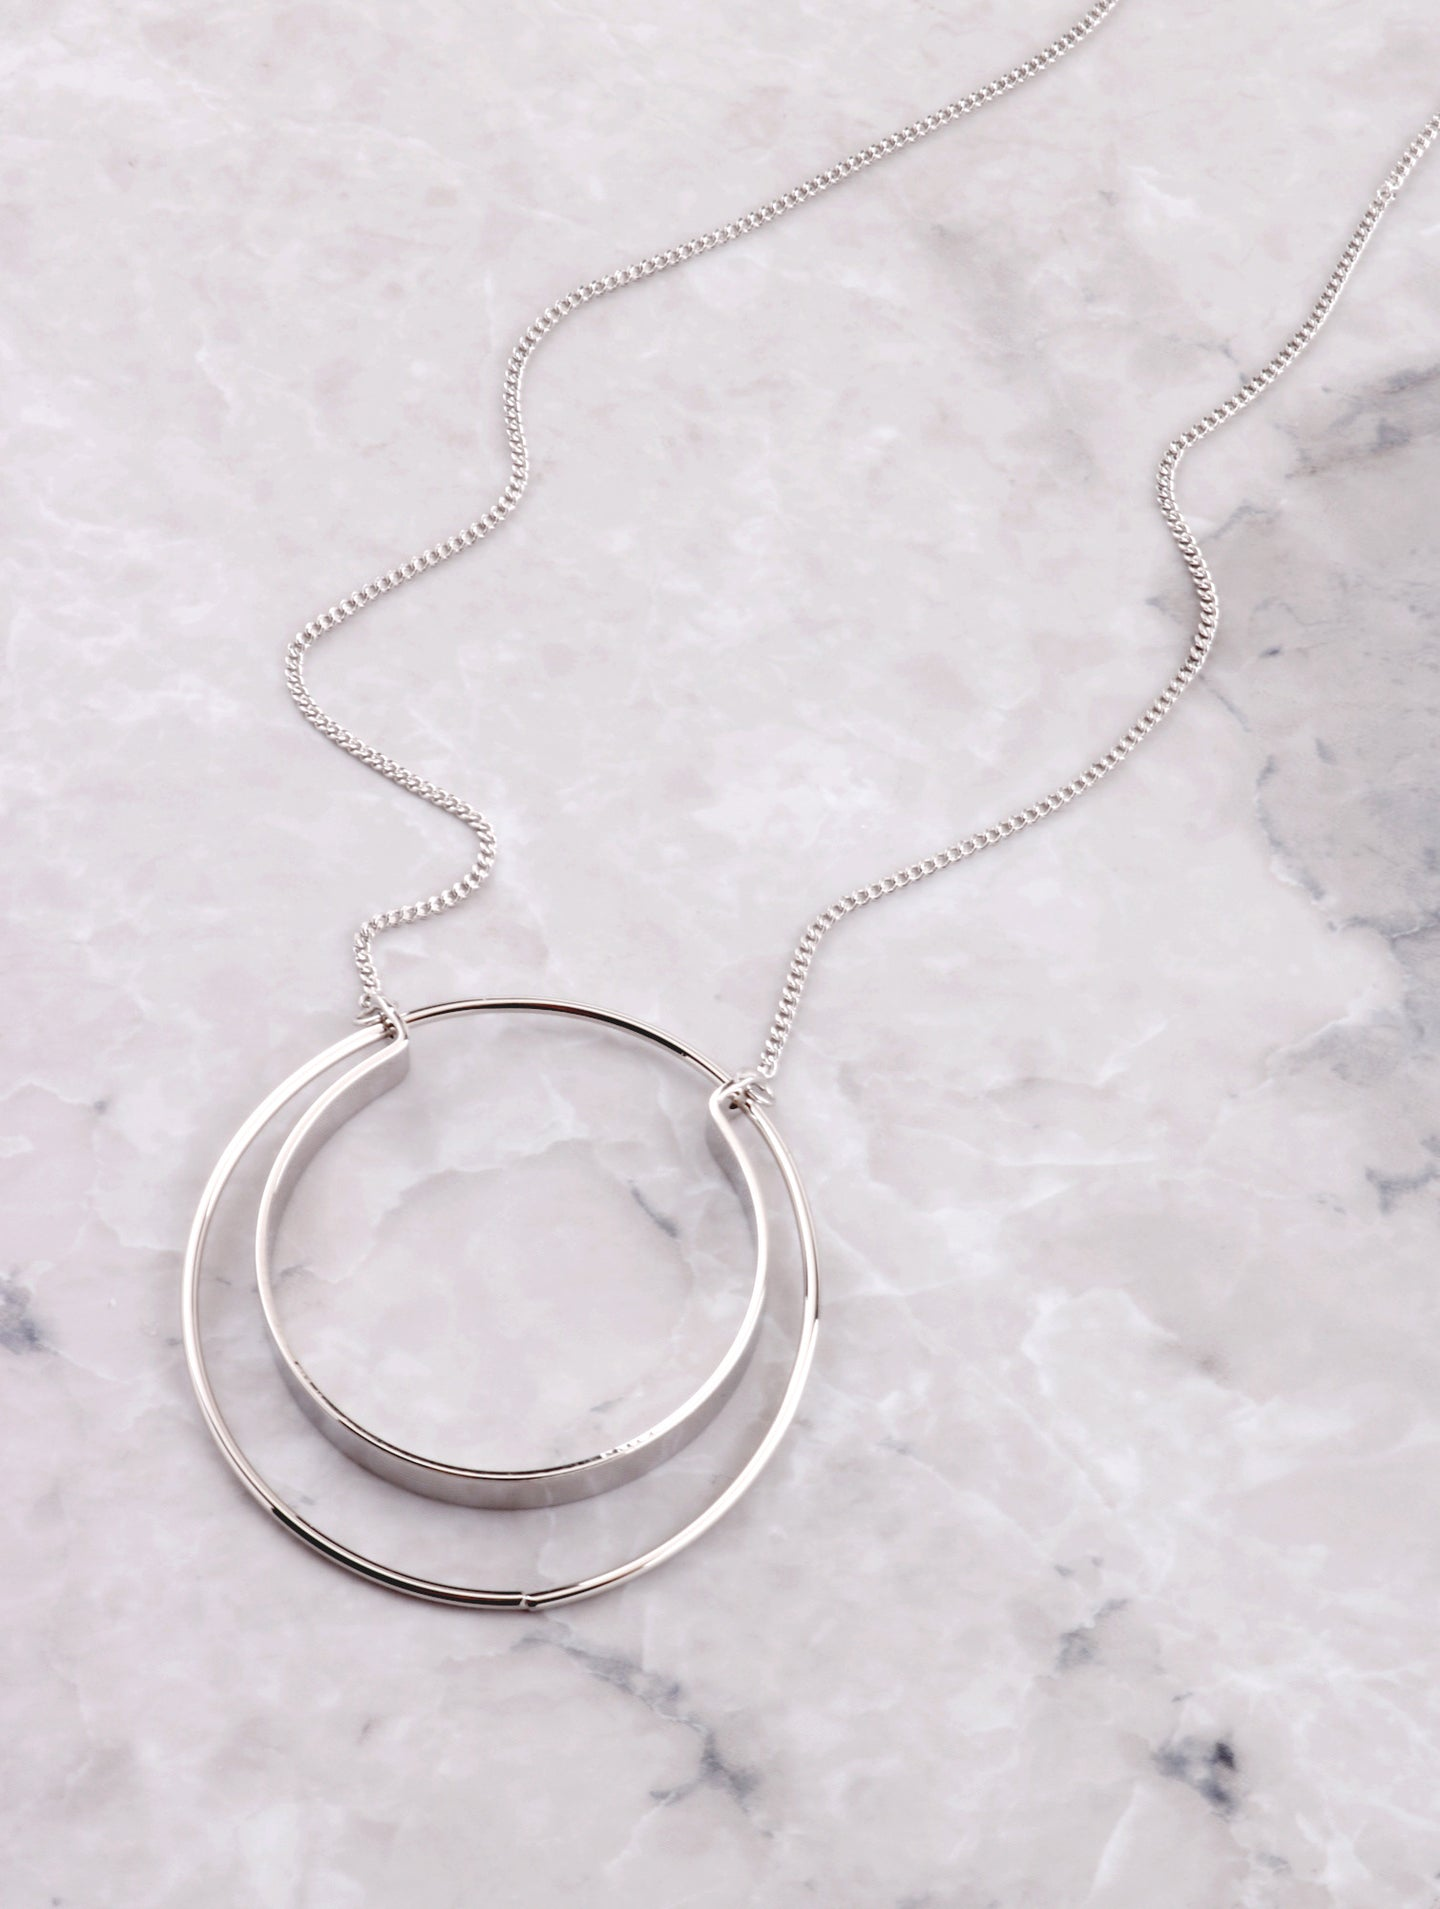 Double Loop Necklace Anarchy Street Silver